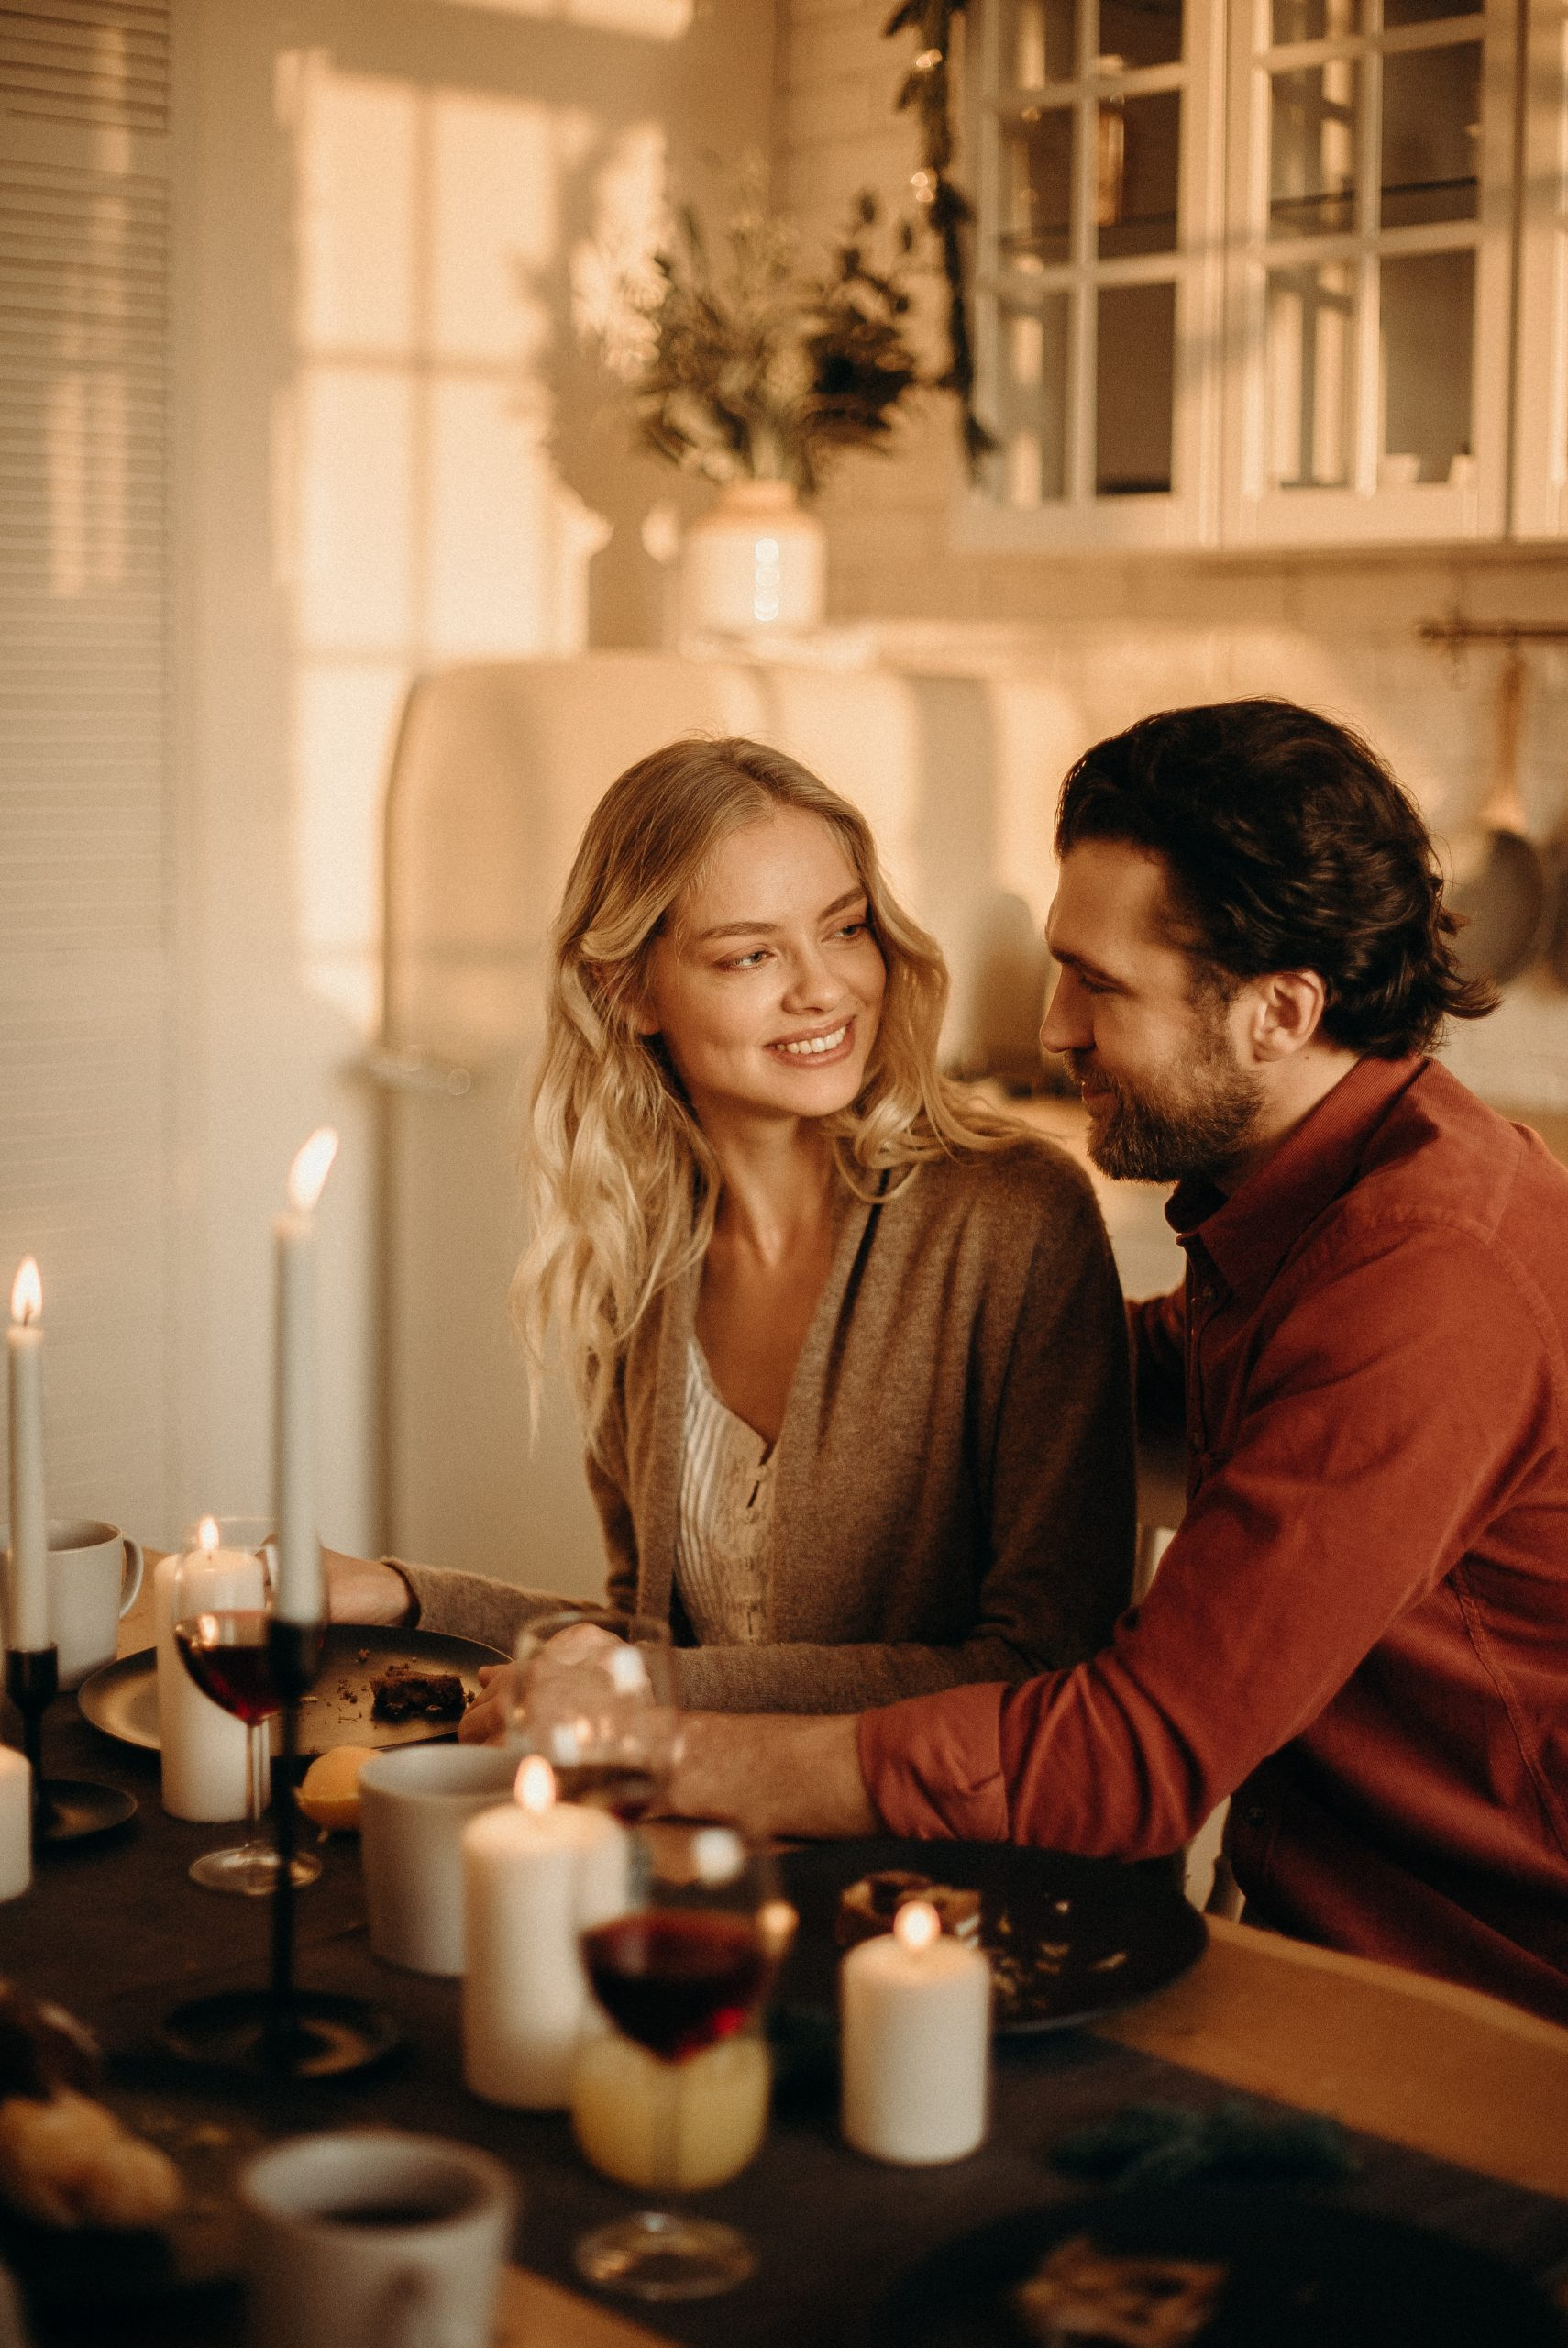 at home date ideas couple romantic dinner source: cottonbro from Pexels